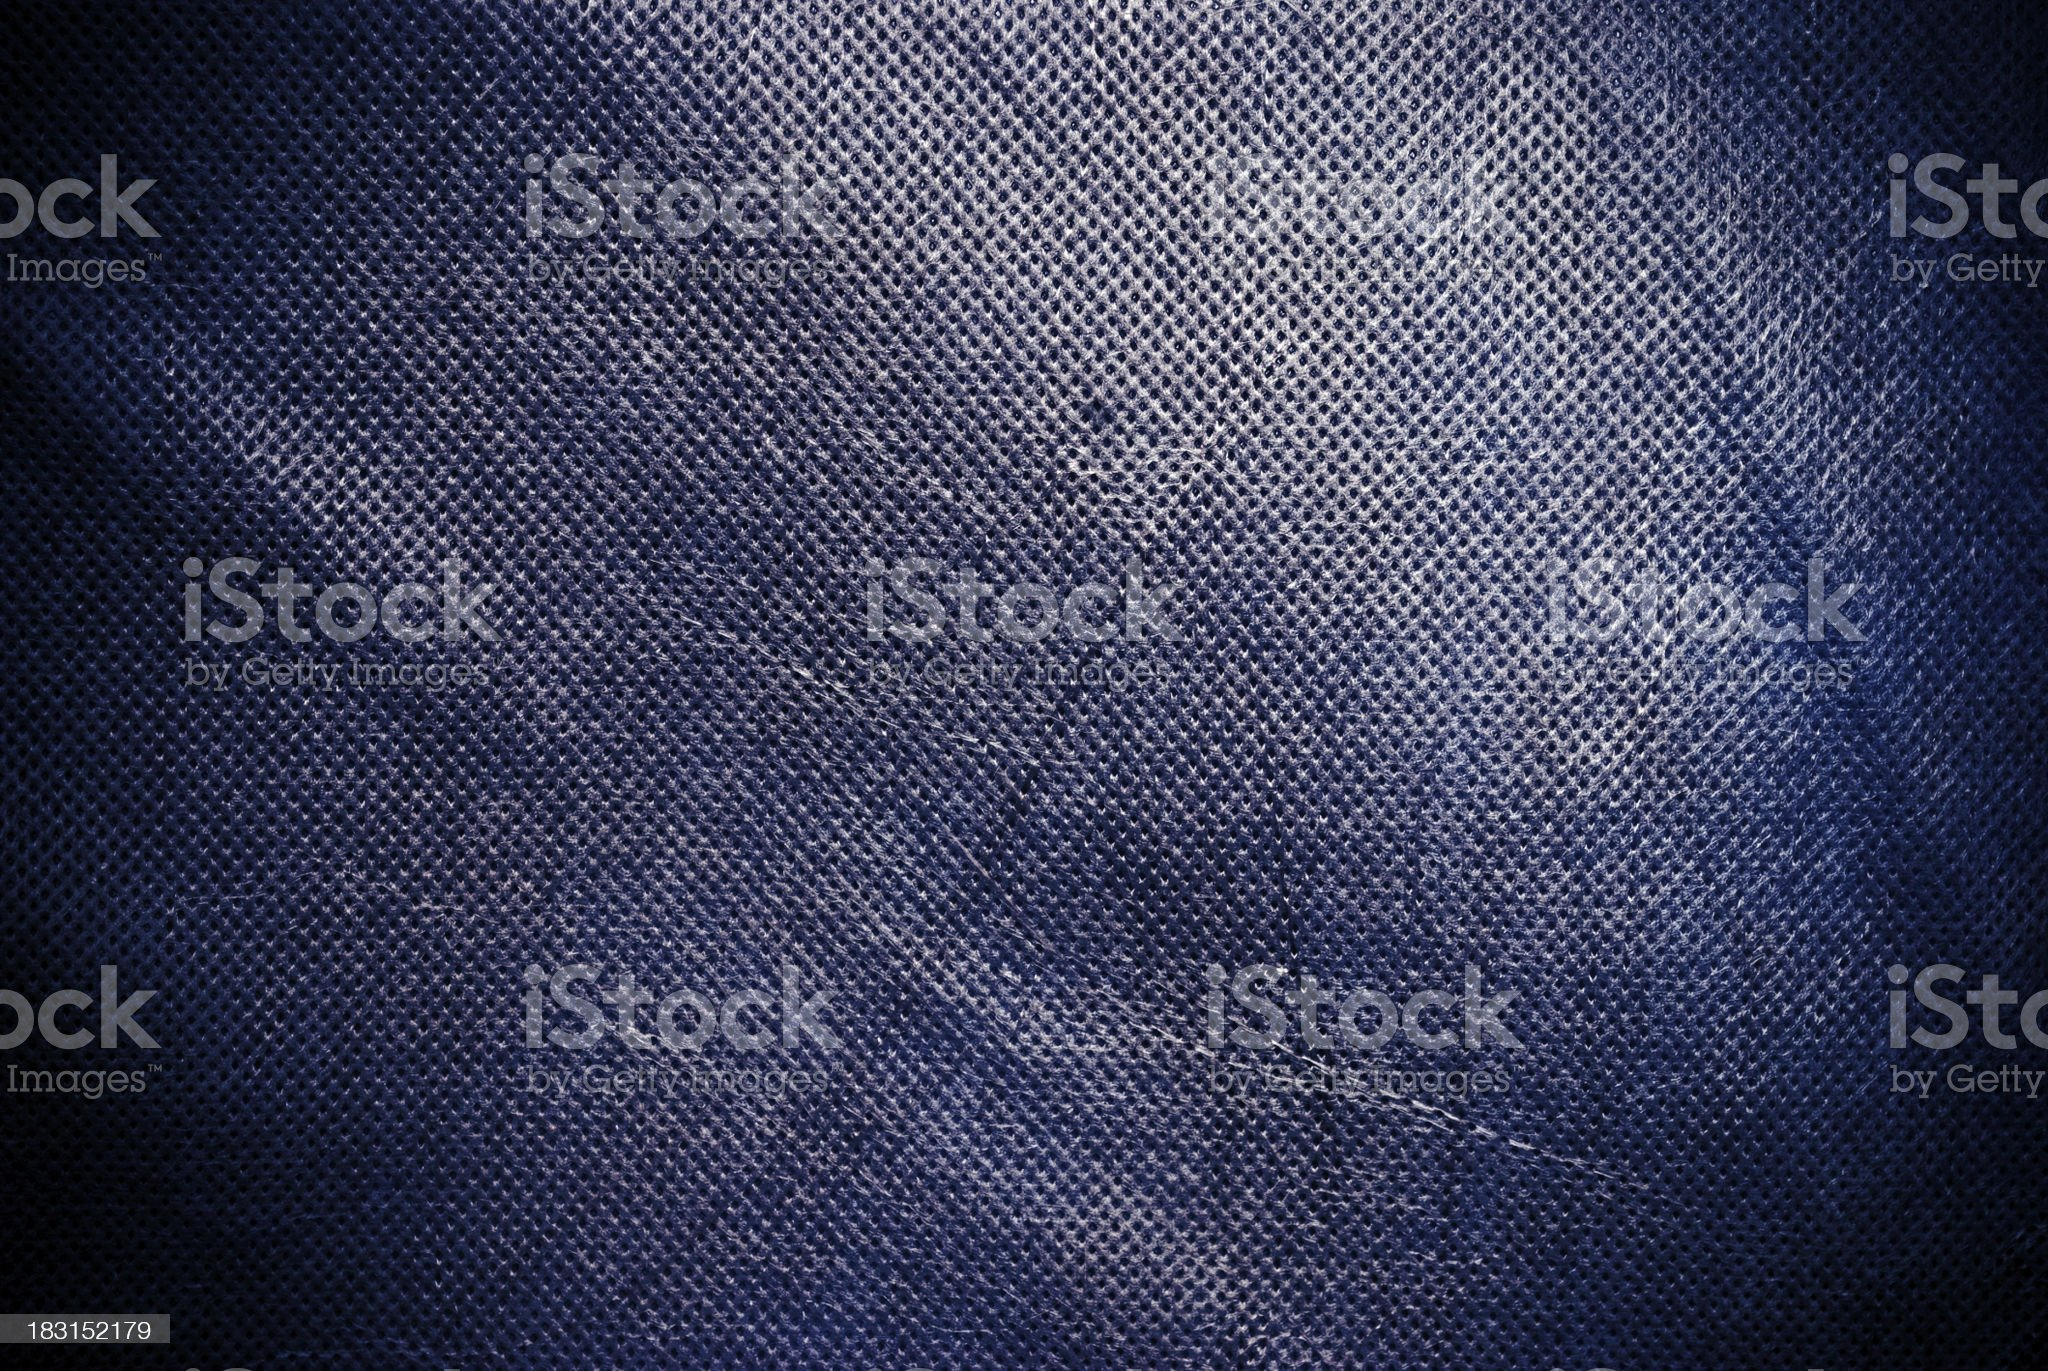 Holed and creased navy blue canvas background or texture royalty-free stock photo